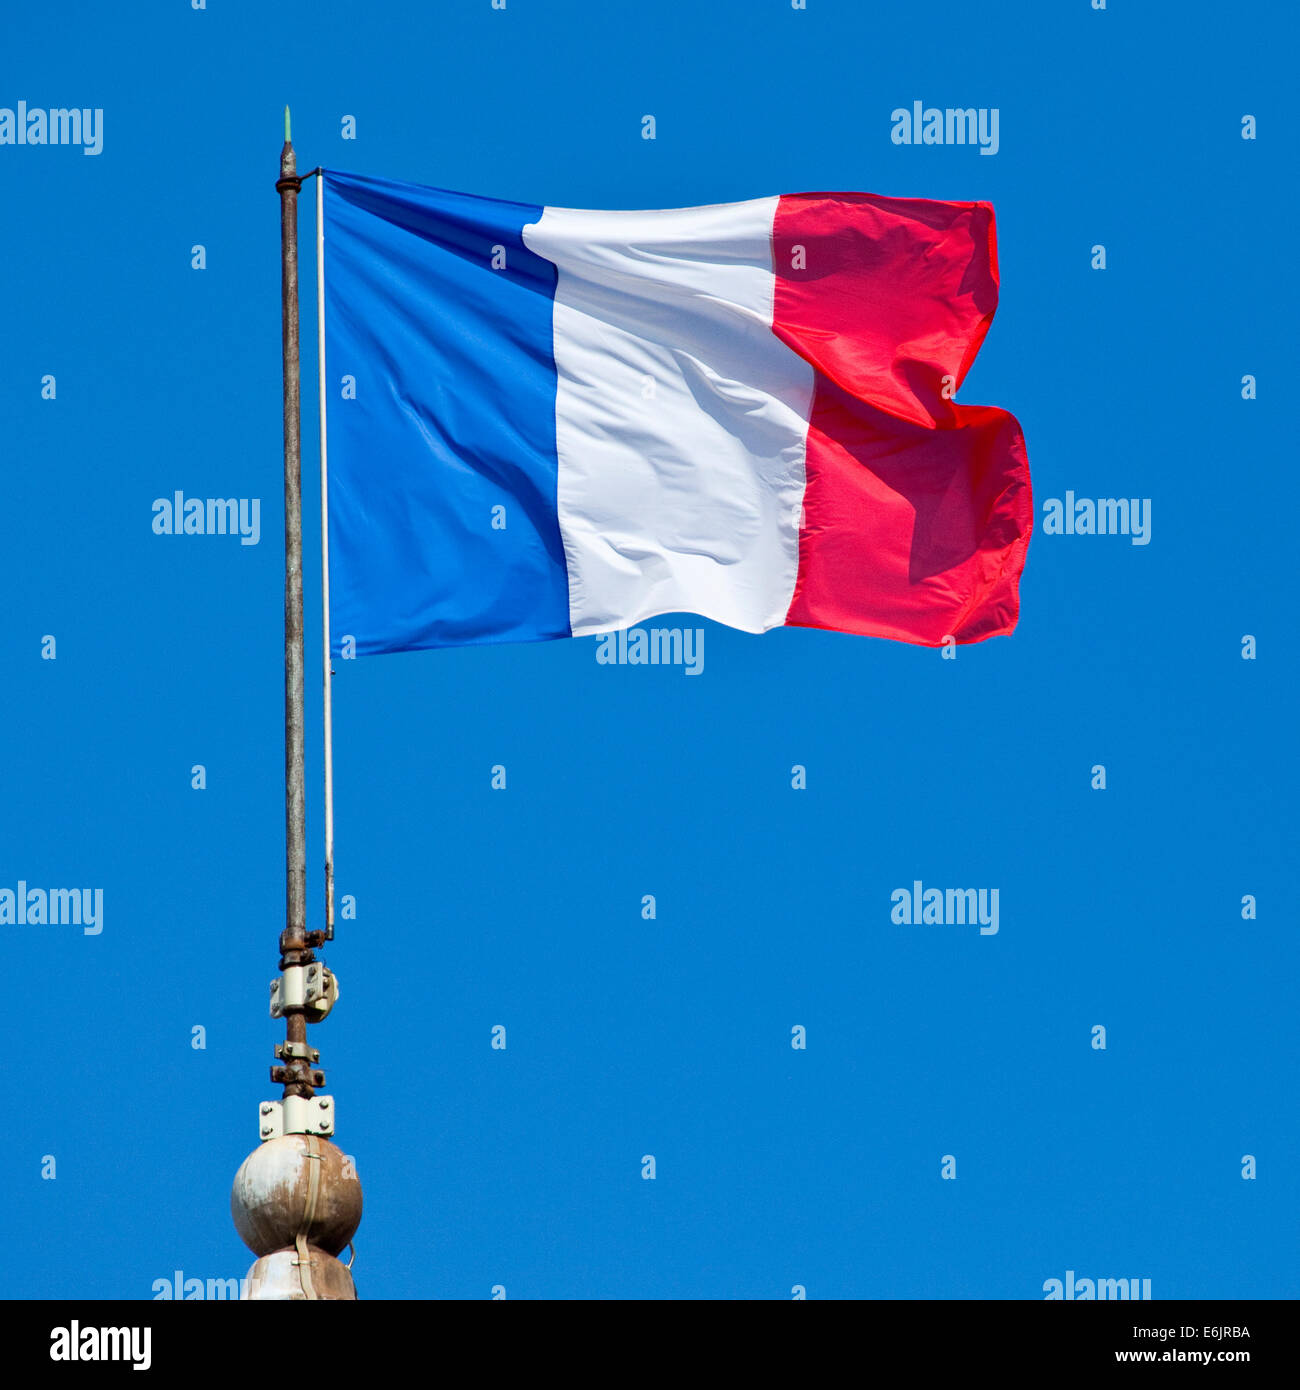 The French flag. Stock Photo